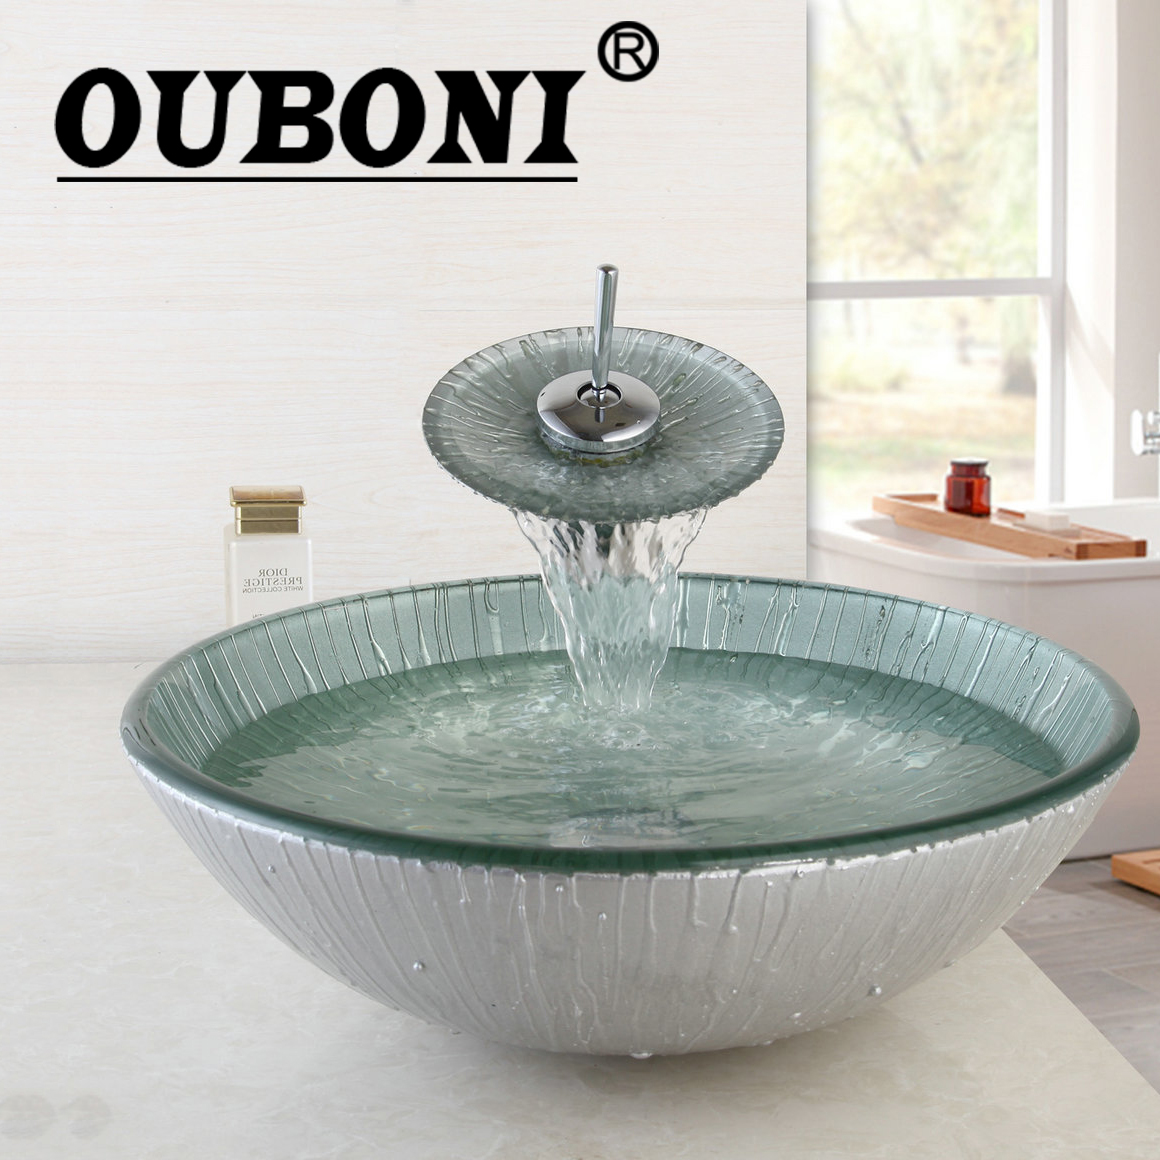 OUBONI Brand New Wash Basin Sets Bathroom Sink Set Tempered Glass Bathroom Sink And Chrome Finish Bathroom Faucet